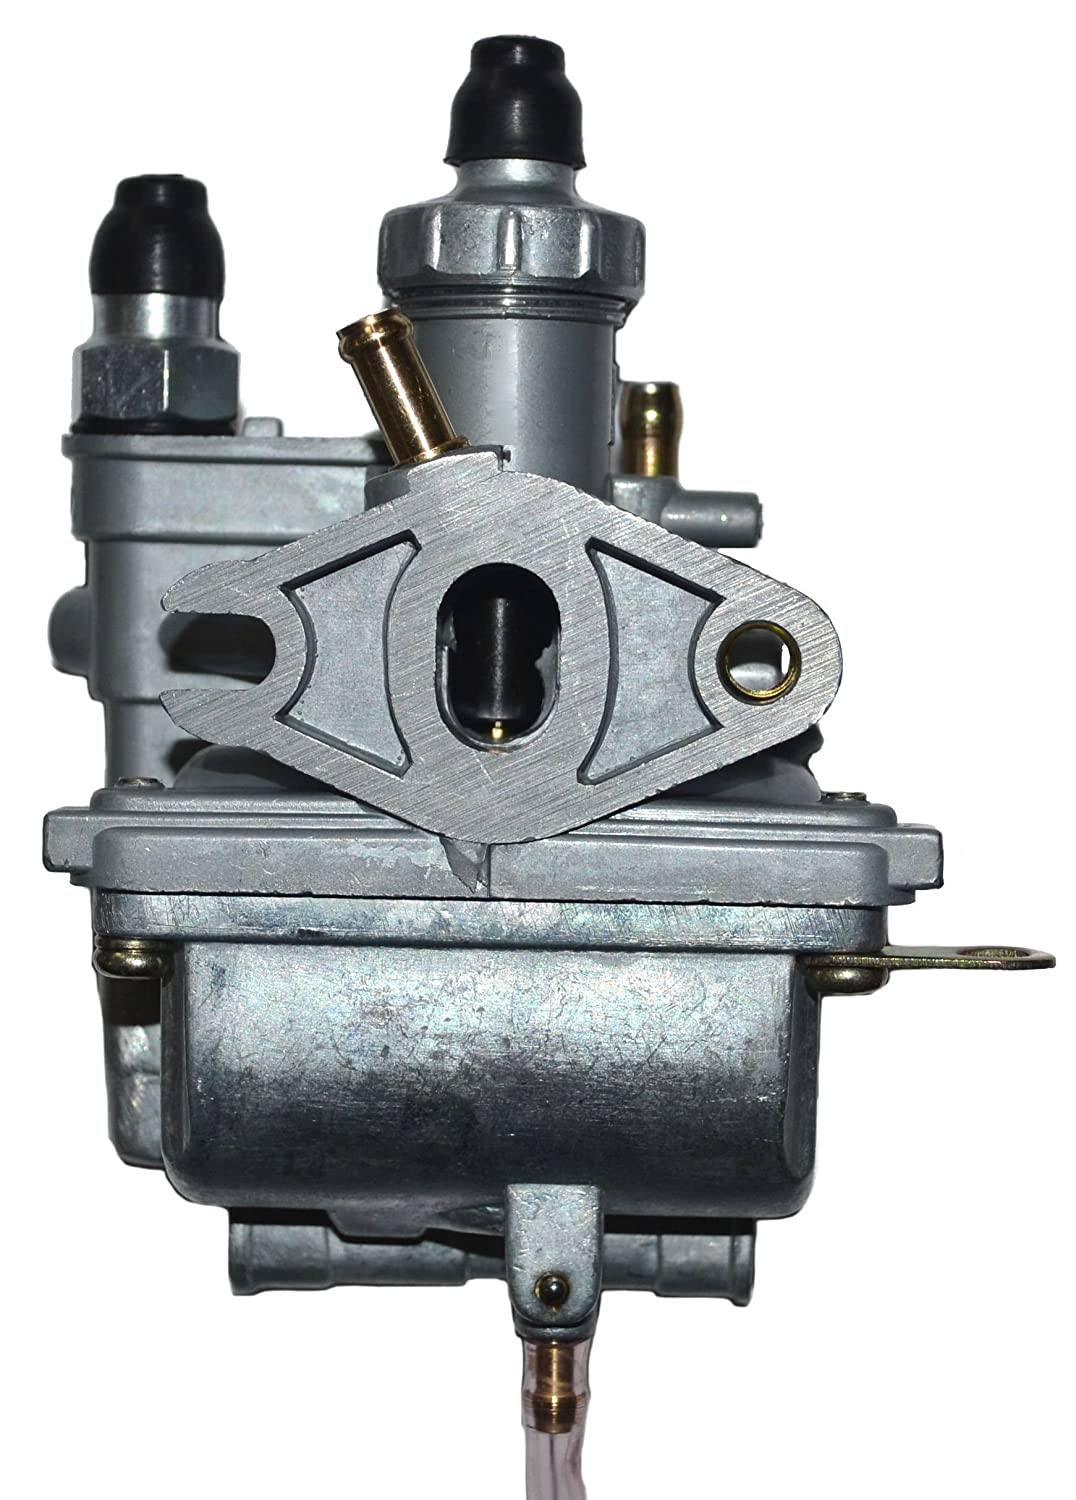 1980 1991 Carburetor For Suzuki Fa50 Fa 50 Scooter Moped Diagram Drz 400 Carb Upgrade Dirt Bike Shuttle New Automotive